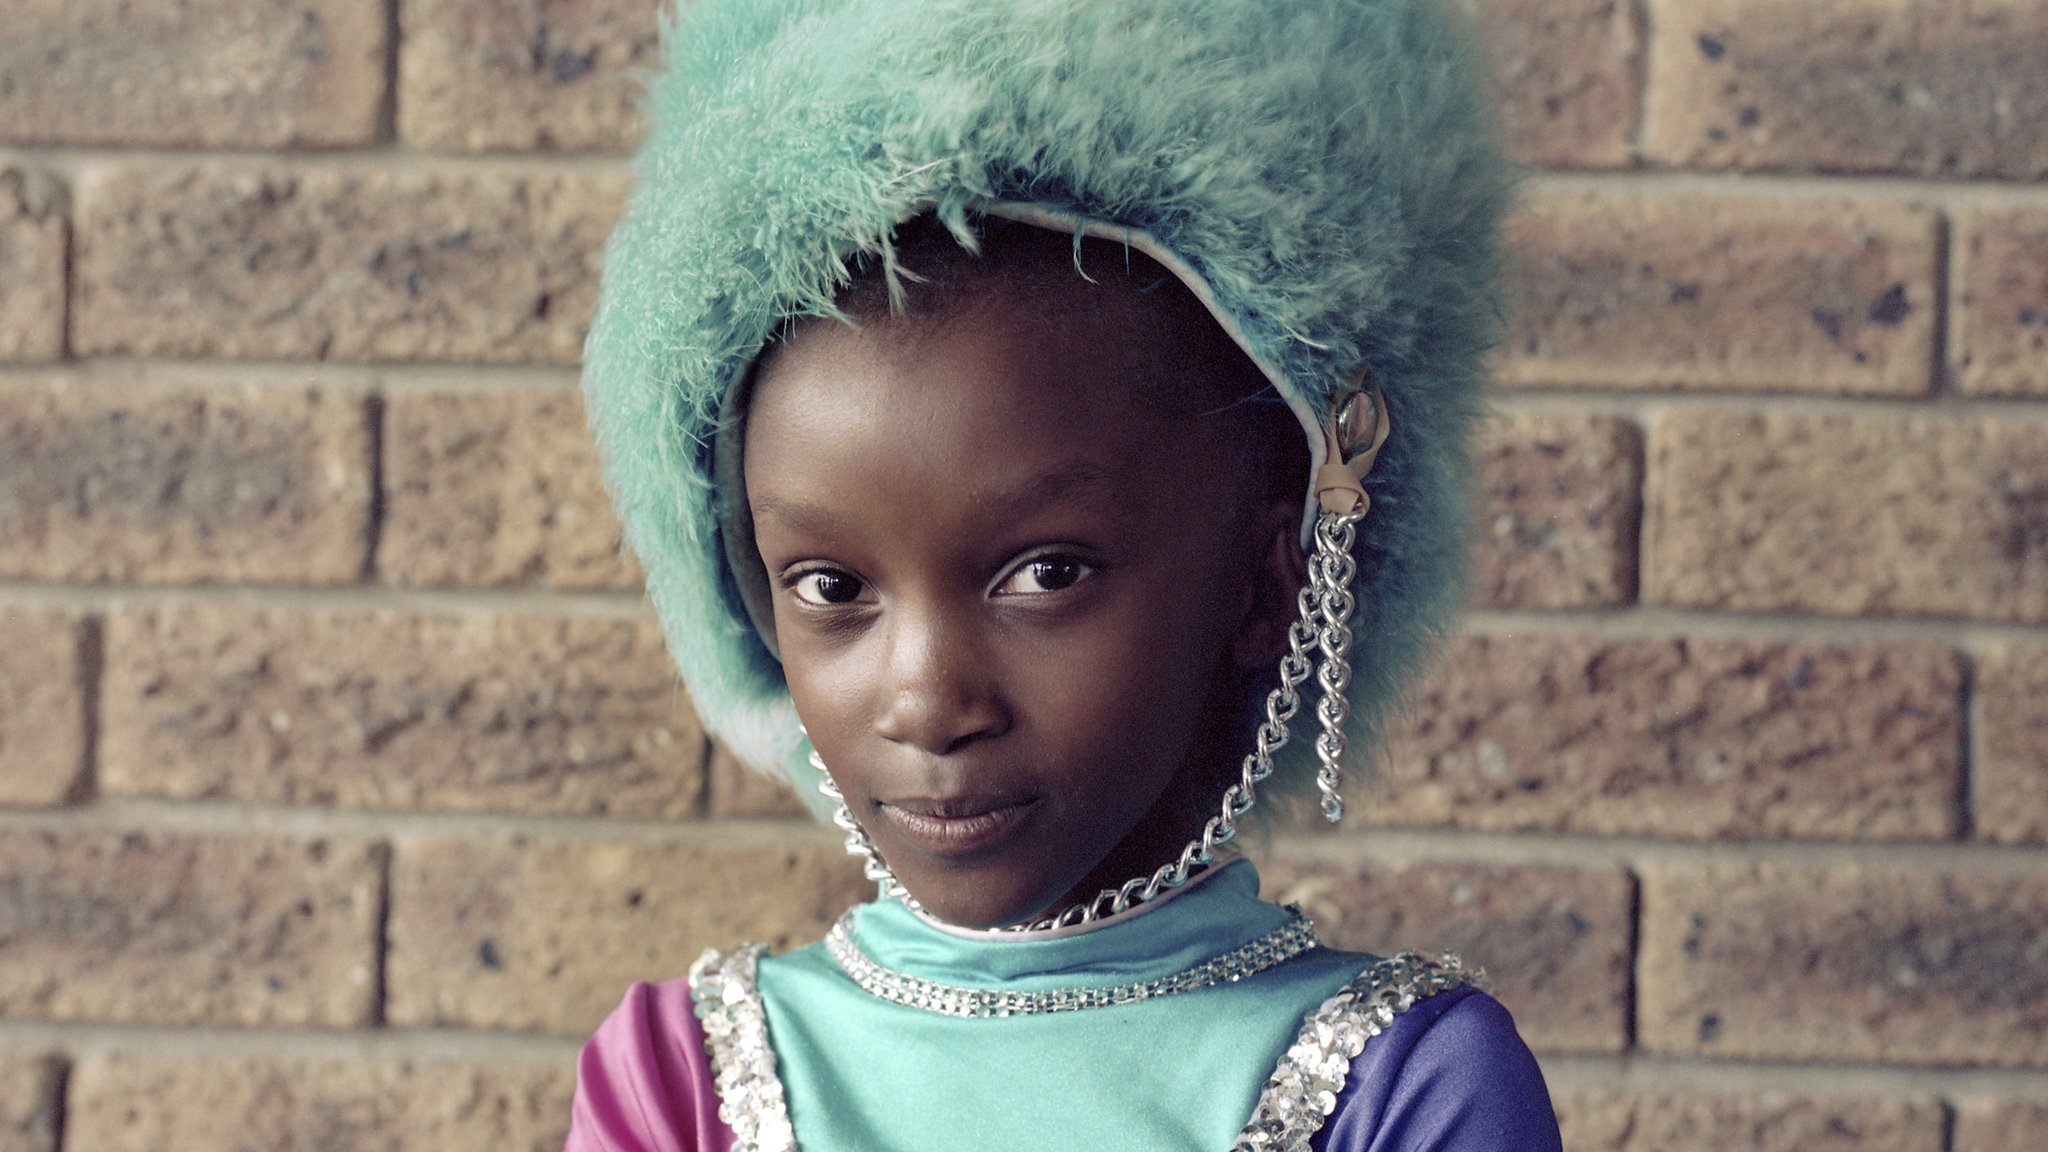 Taylor Wessing Prize: Alice Mann wins with portraits of drum majorettes